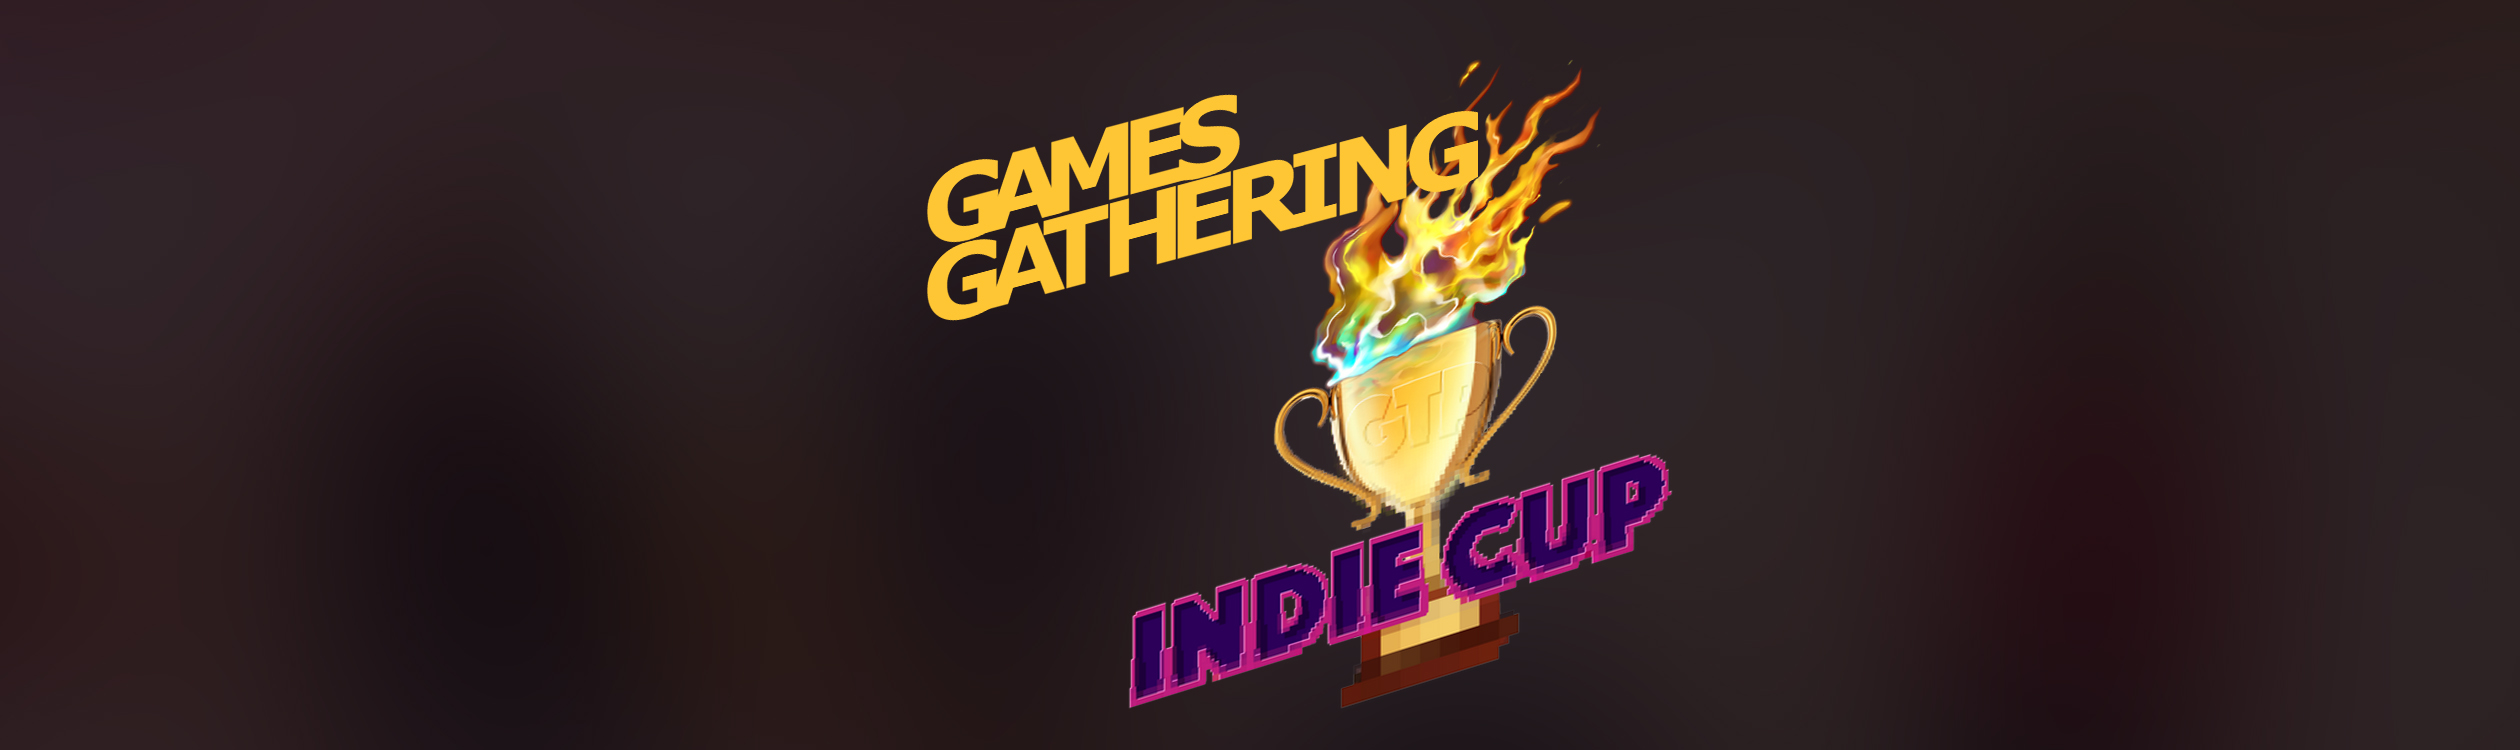 gtp-indie-cup-hyperforma-games-gathering